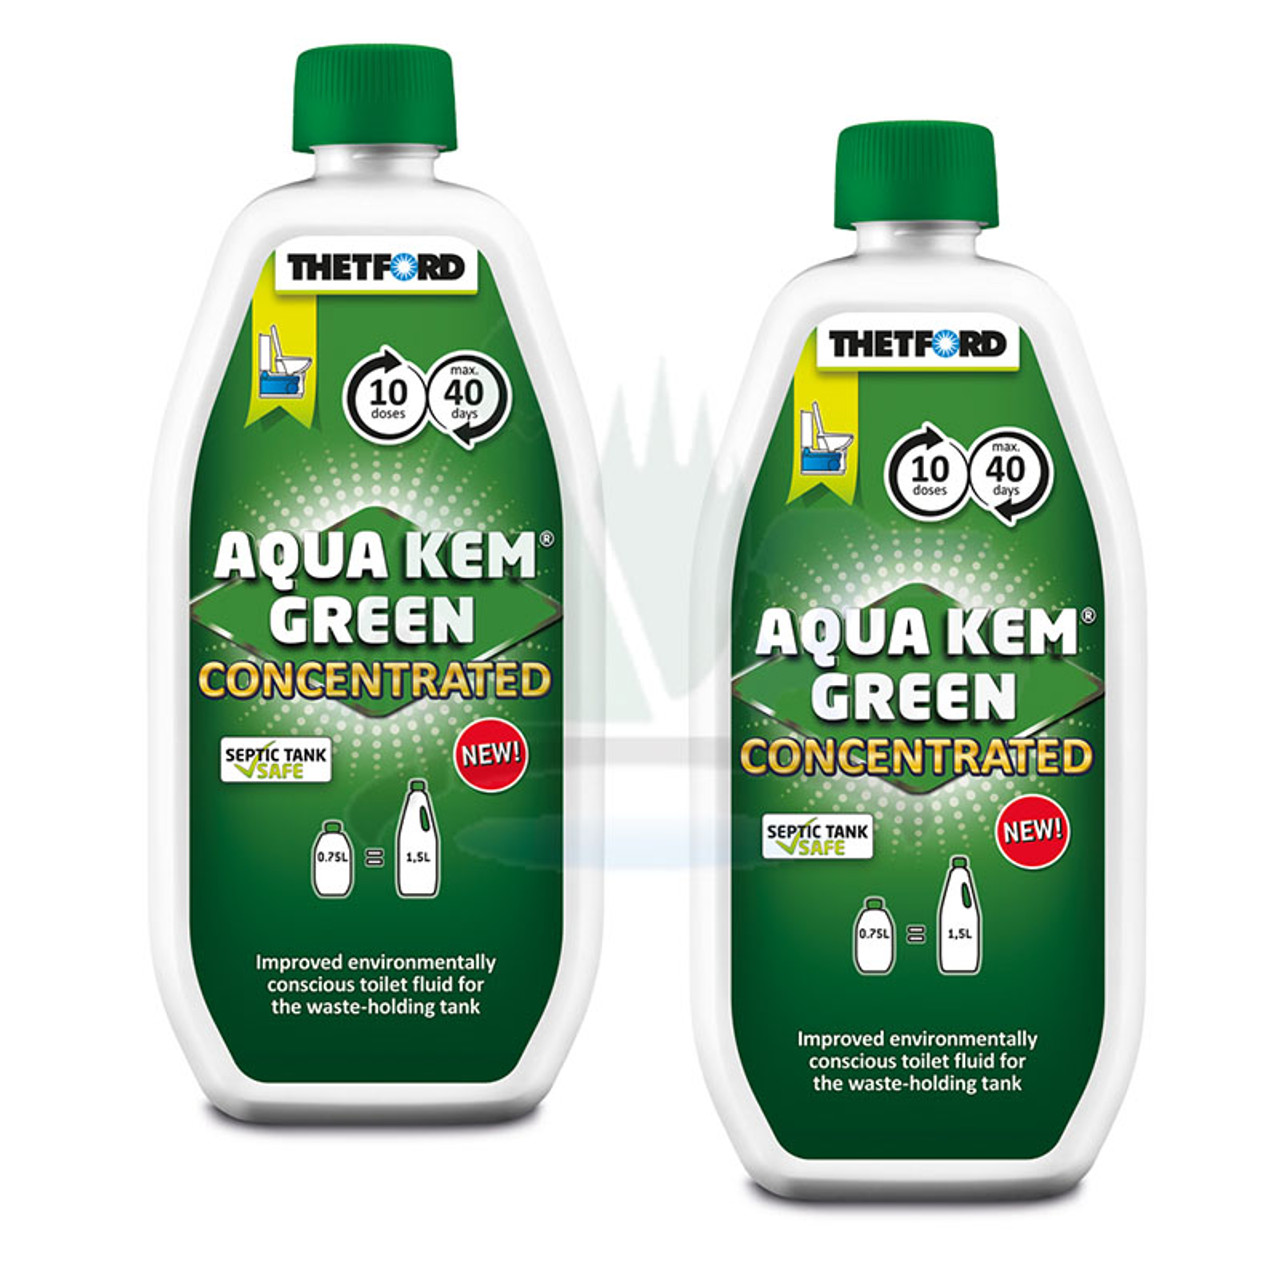 Aqua Kem Green from Thetford is available in concentrated form for the first time, meaning smaller bottles and better value for money. Not only is Aqua Kem Green eco-friendly and suitable for septic tanks but the concentrated form benefits from improved liquefication.